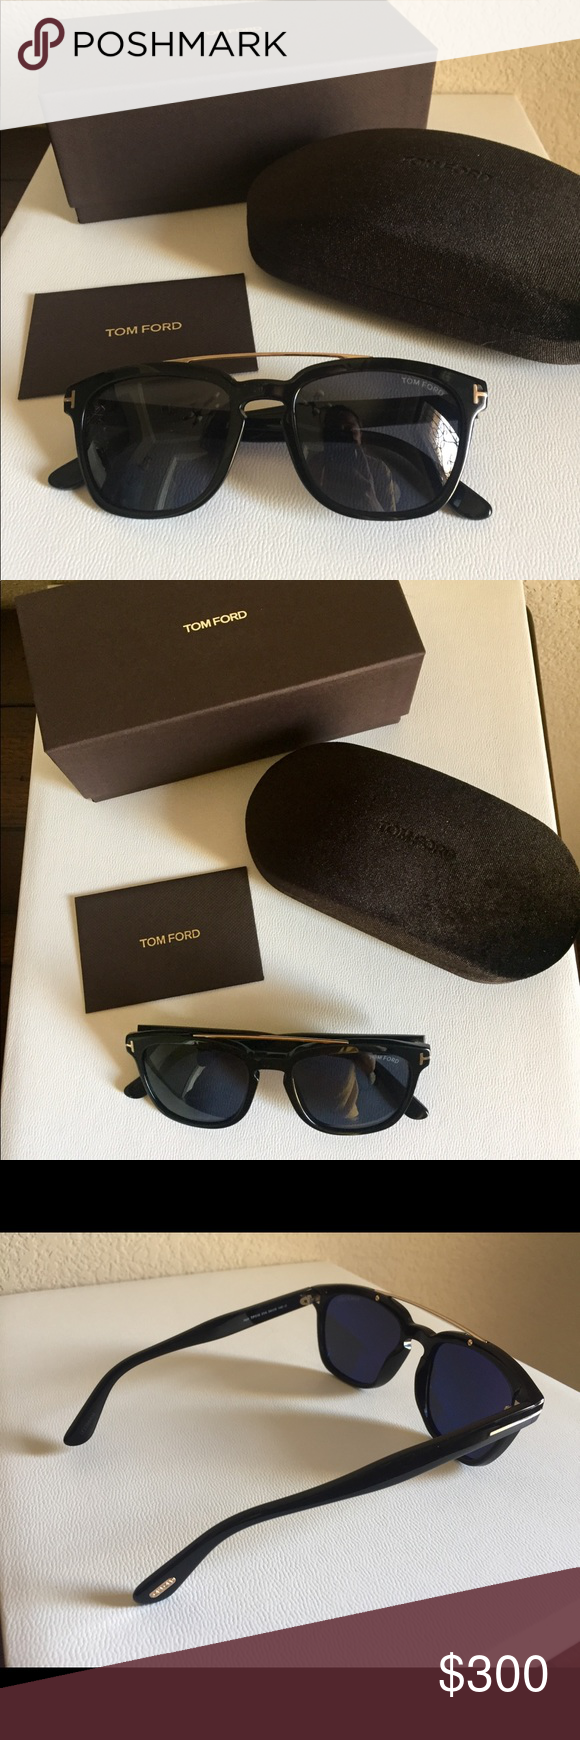 1bd422bc82 Tom Ford Men s Sunglasses Holt TF516 style. Never worn